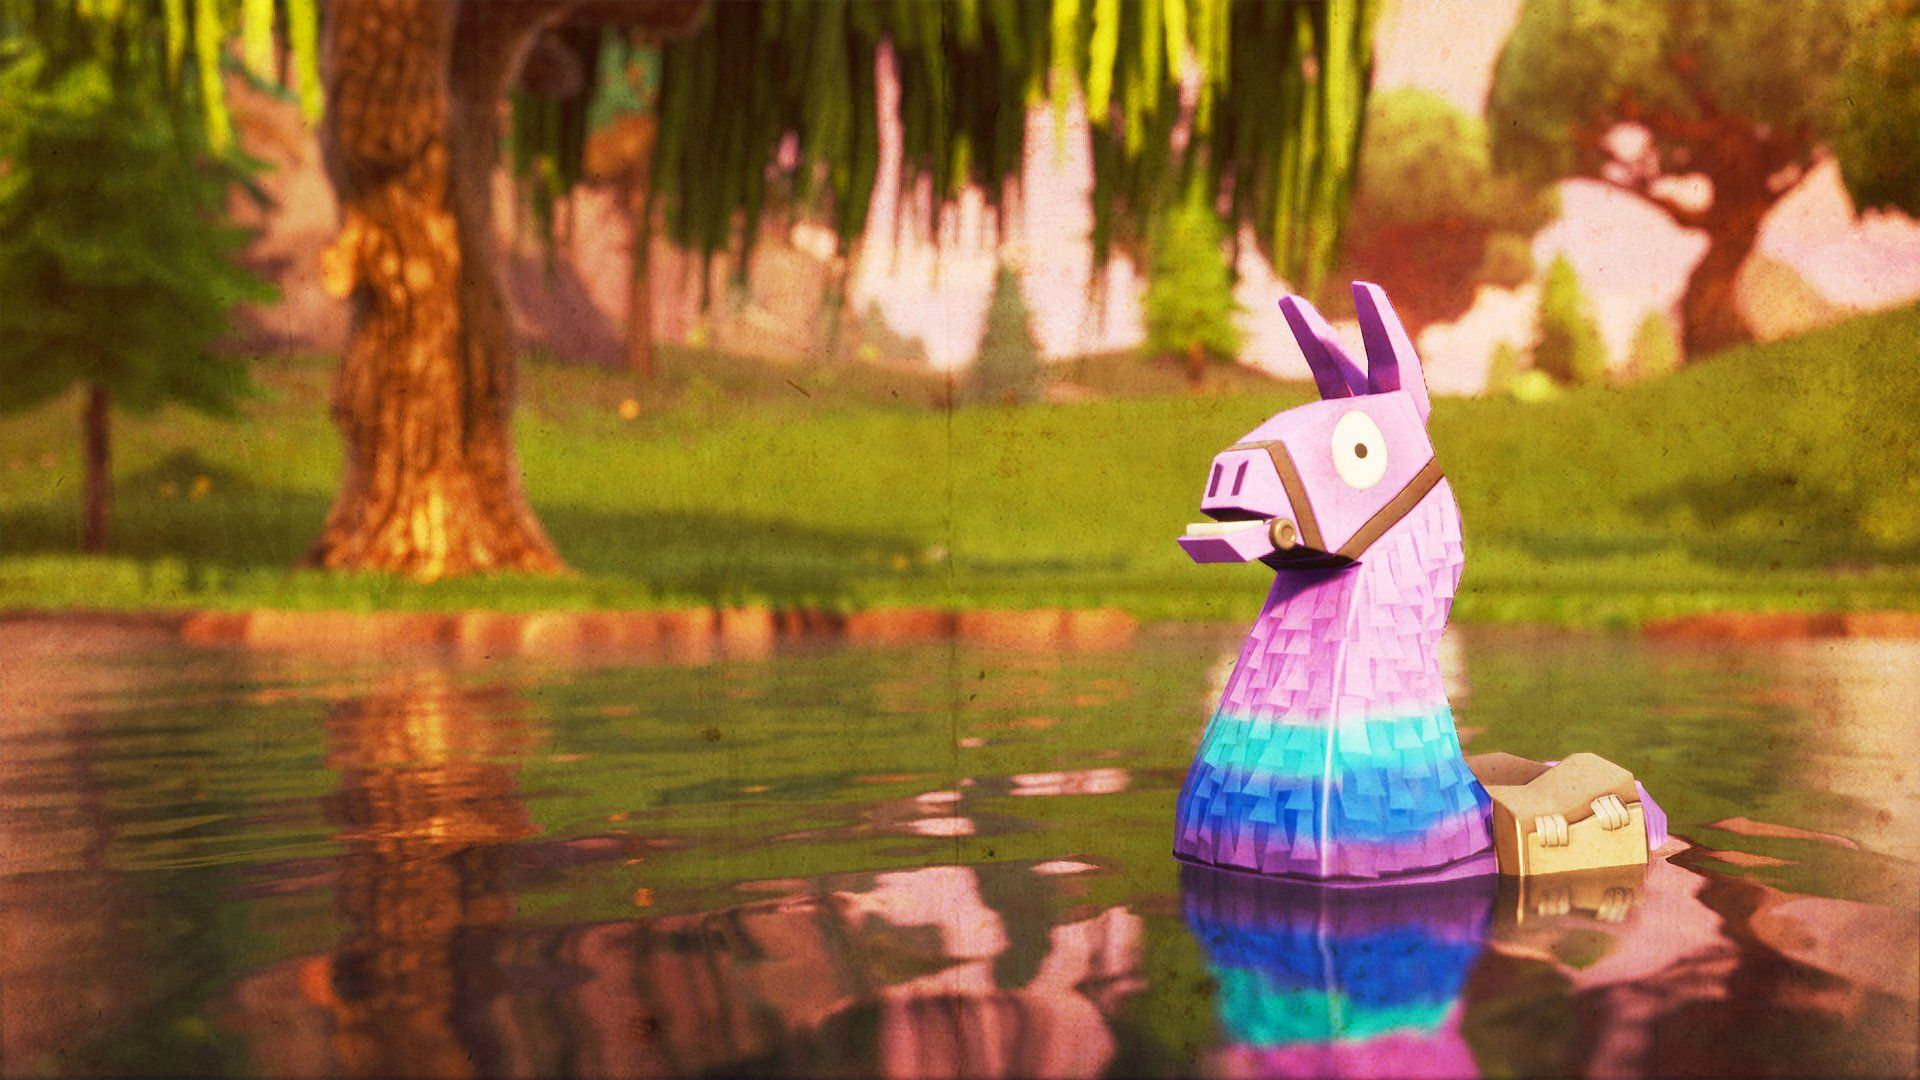 2019 Fortnite battle royale Llama Wallpapers For Desktop 4K